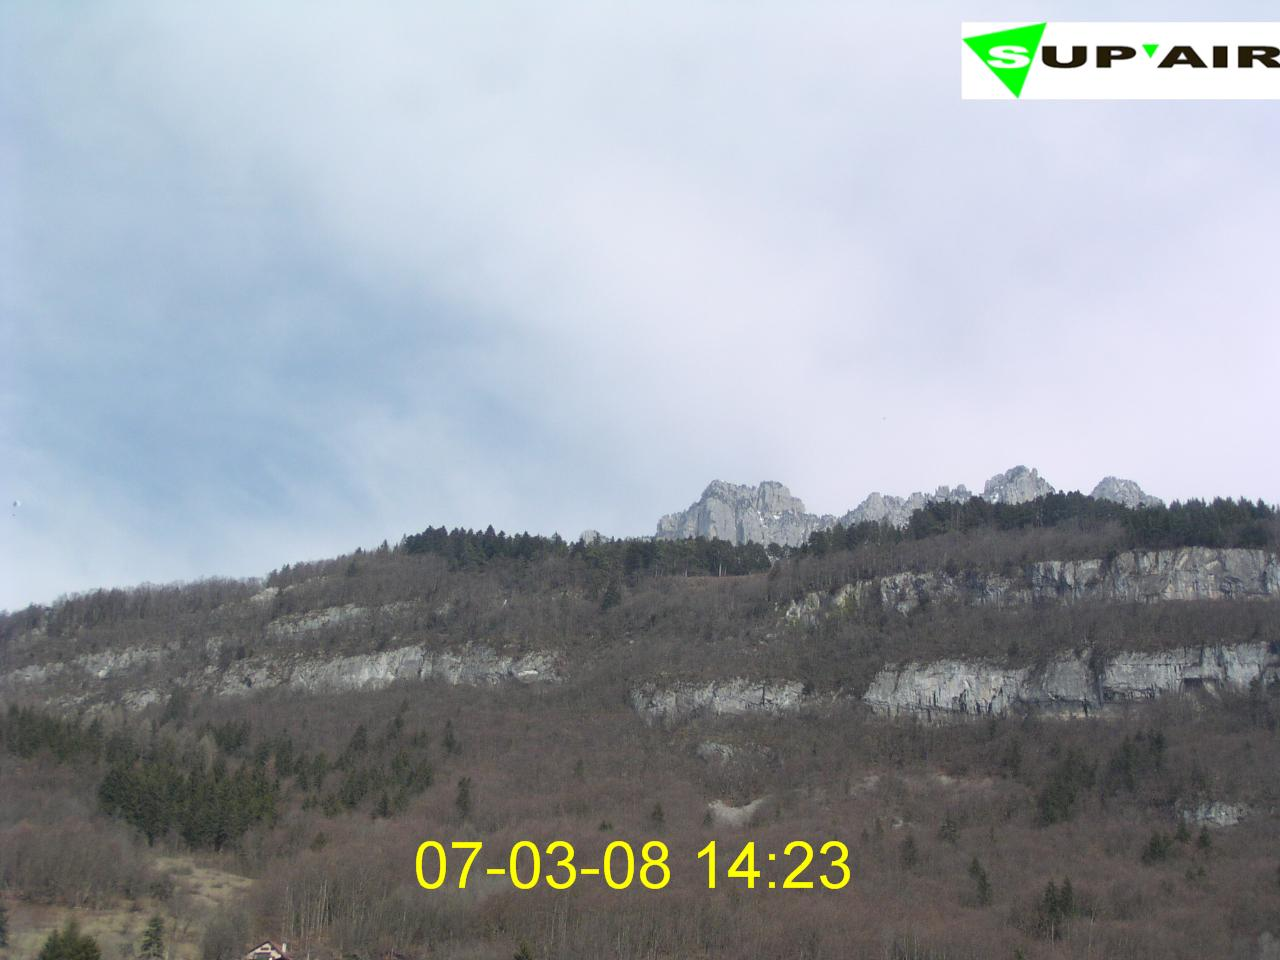 Supair parapente webcam photo 2